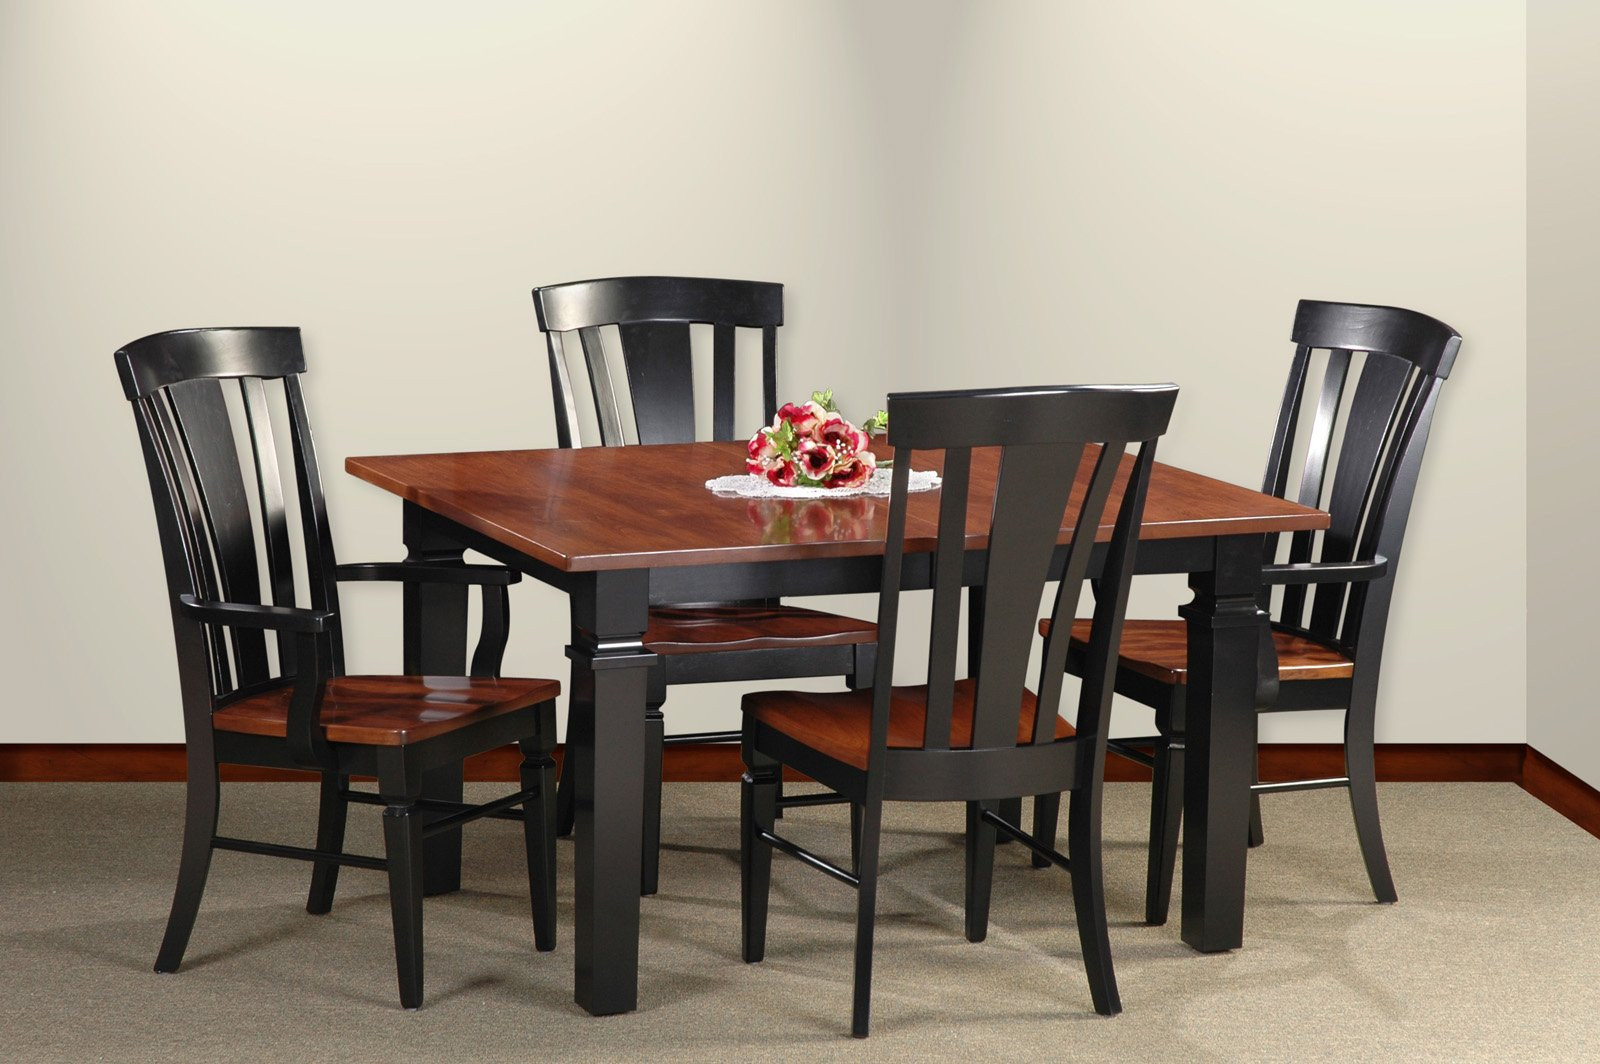 Best ideas about Dining Room Tables . Save or Pin Buy Dining Room Tables in Rochester NY Now.